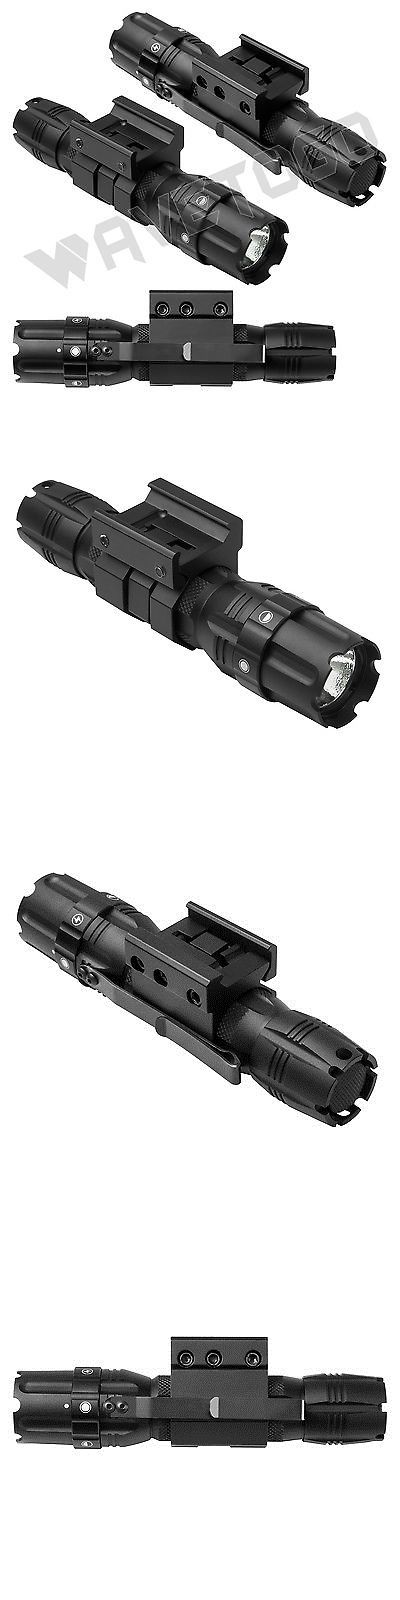 sporting goods: Ncstar Pro Green Led 3W 250 Lumen Flashlight Weaver Picatinny Mount Strobe 1 BUY IT NOW ONLY: $39.99